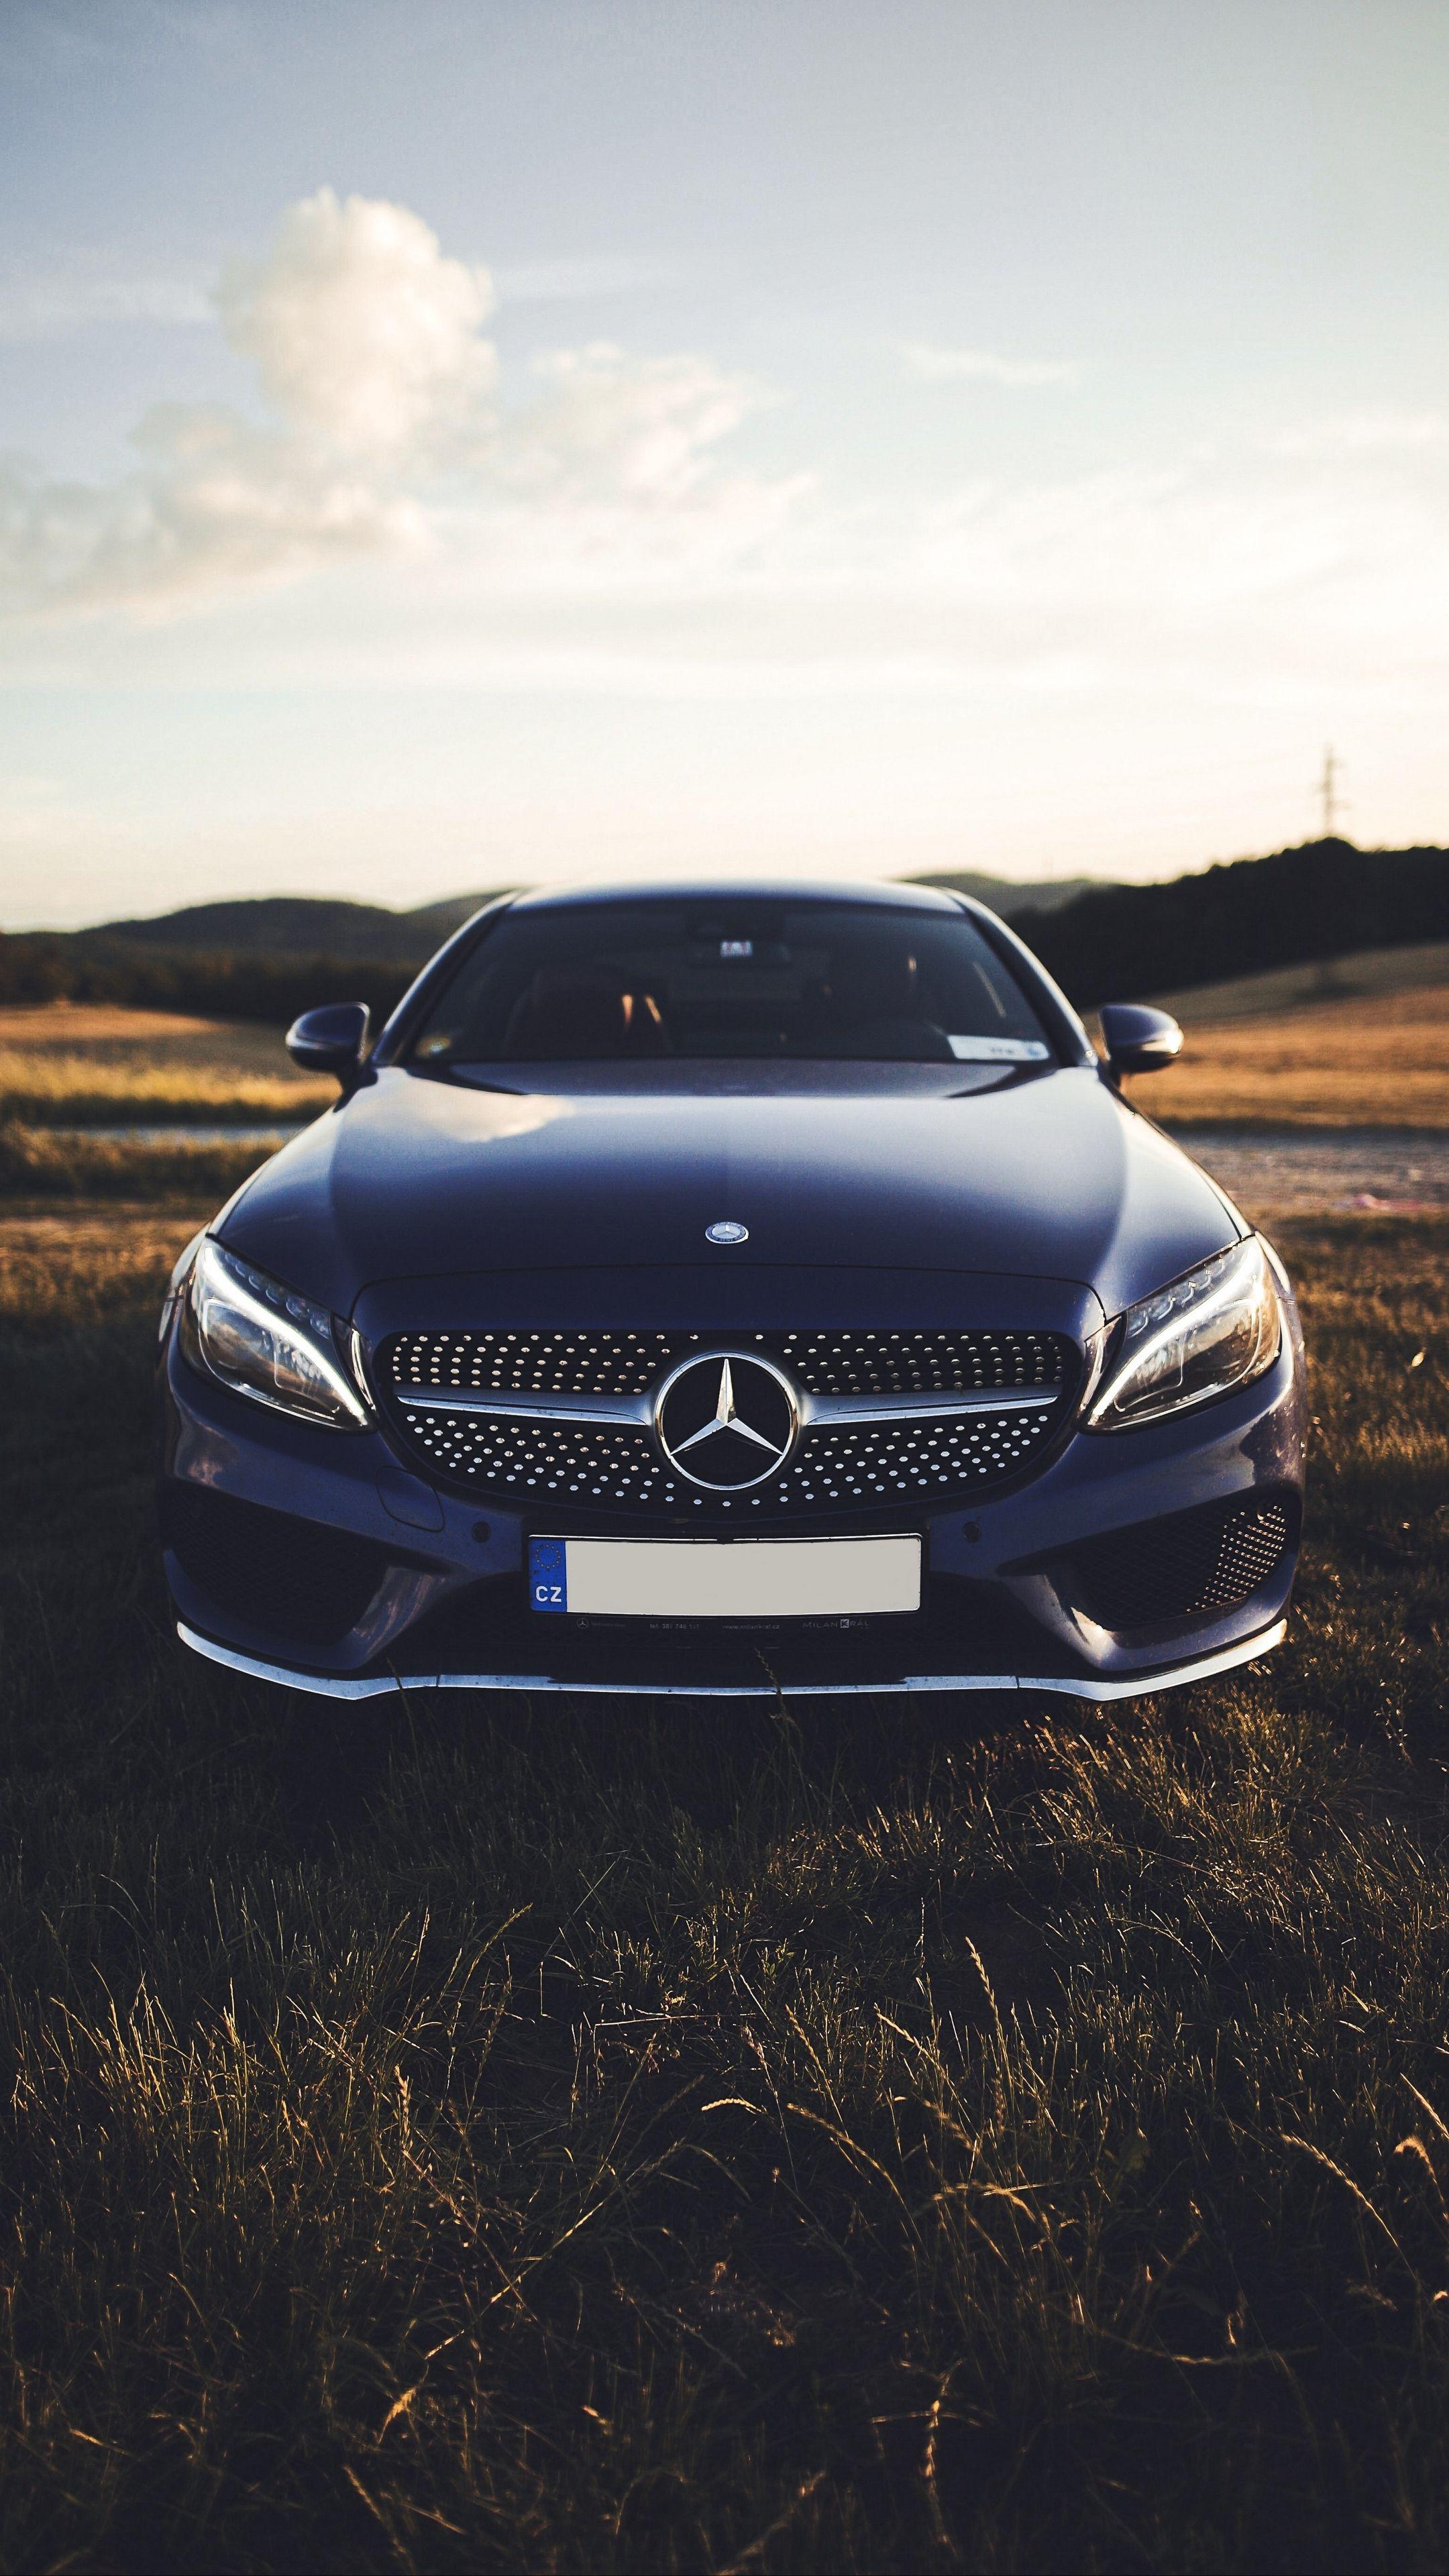 Benz iPhone Wallpapers   Top Free Benz iPhone Backgrounds ...